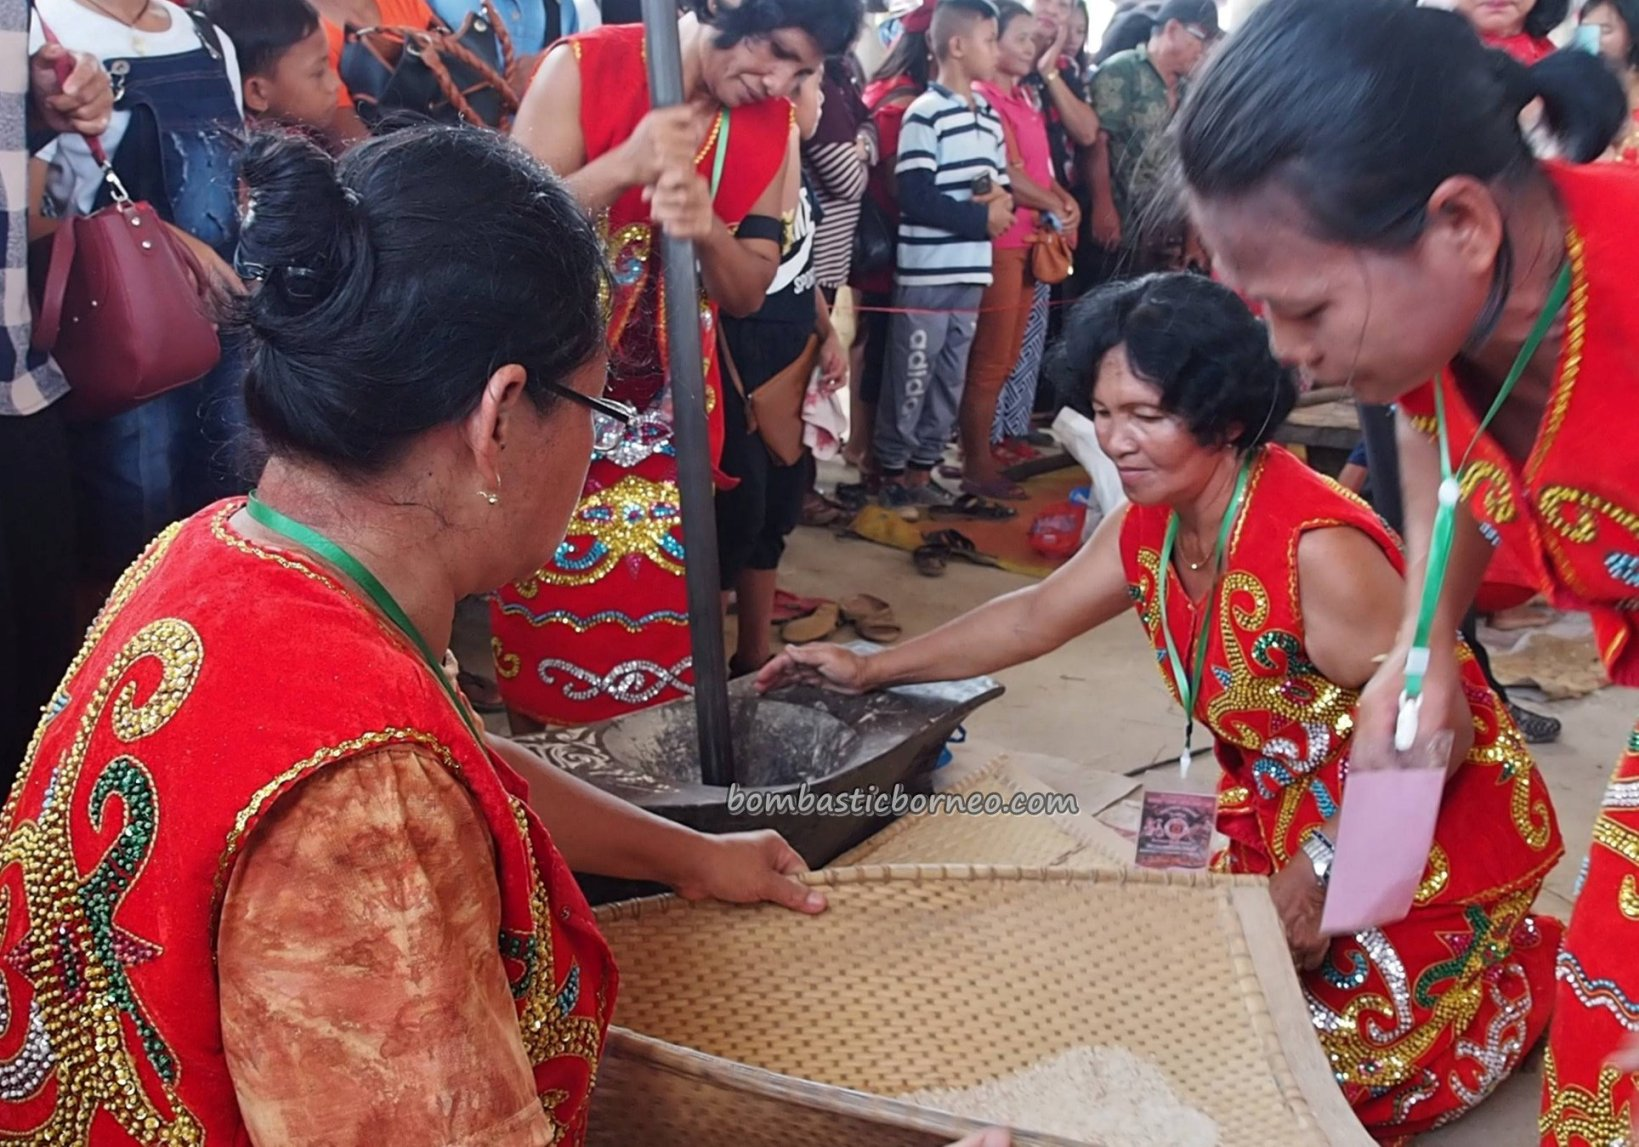 Lomba menumbuk padi, Rumah Betang Raya Dori Mpulor, Dayak harvest festival, indigenous, culture, Indonesia, ethnic, native, Tourism, tourist attraction, travel guide, trans borneo, 跨境婆罗洲游踪, 西加里曼丹原住民, 传统土著丰收节